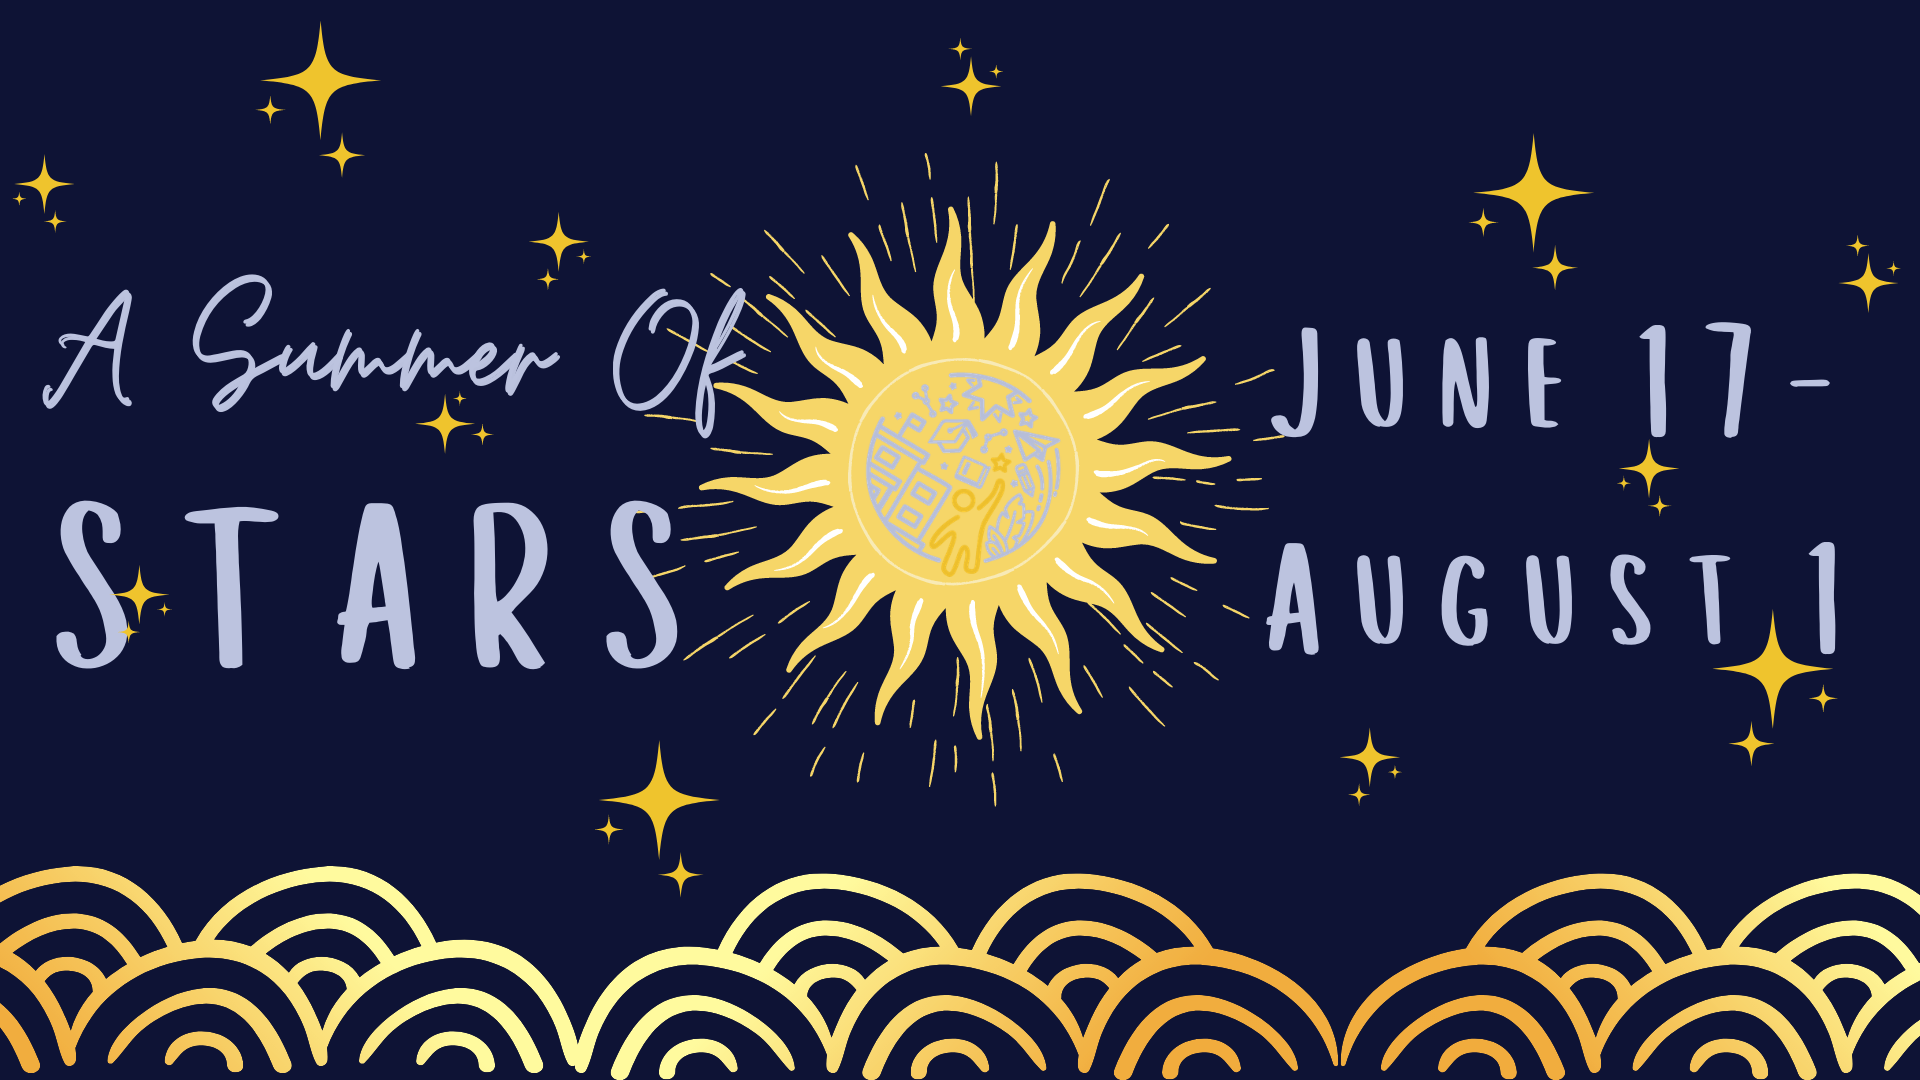 blue background with gold stars and sun detailing and event title with dates